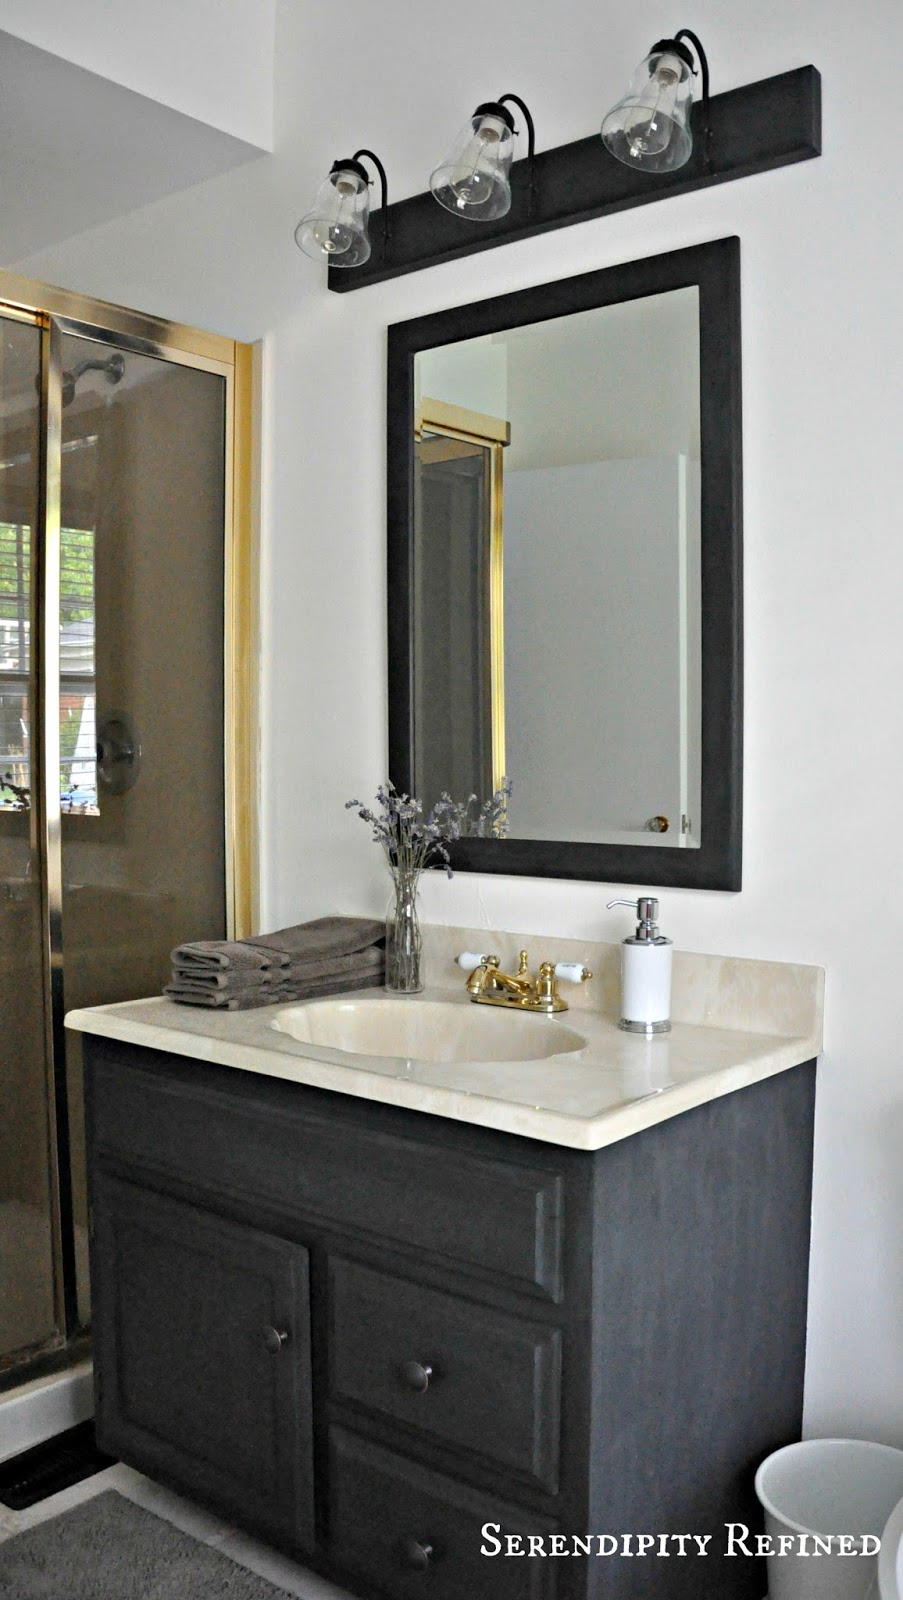 Serendipity Refined: How to Update Oak and Brass Bathroom Fixtures